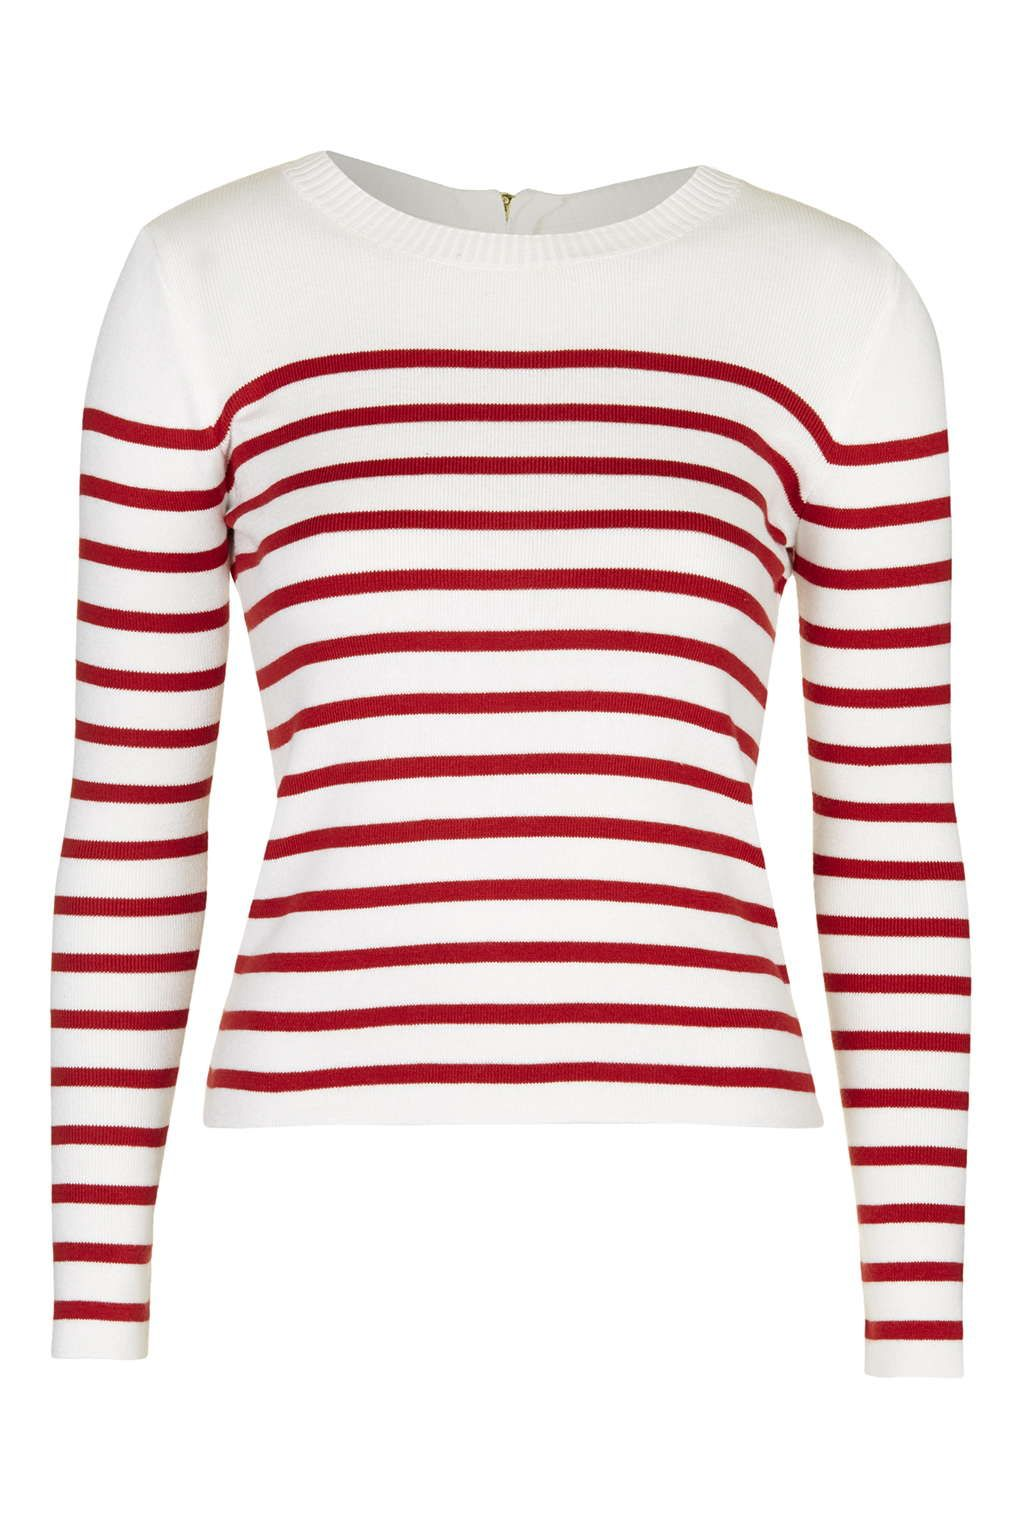 ShopStyle Collective · Red JumperWhite ... aa8db84e3